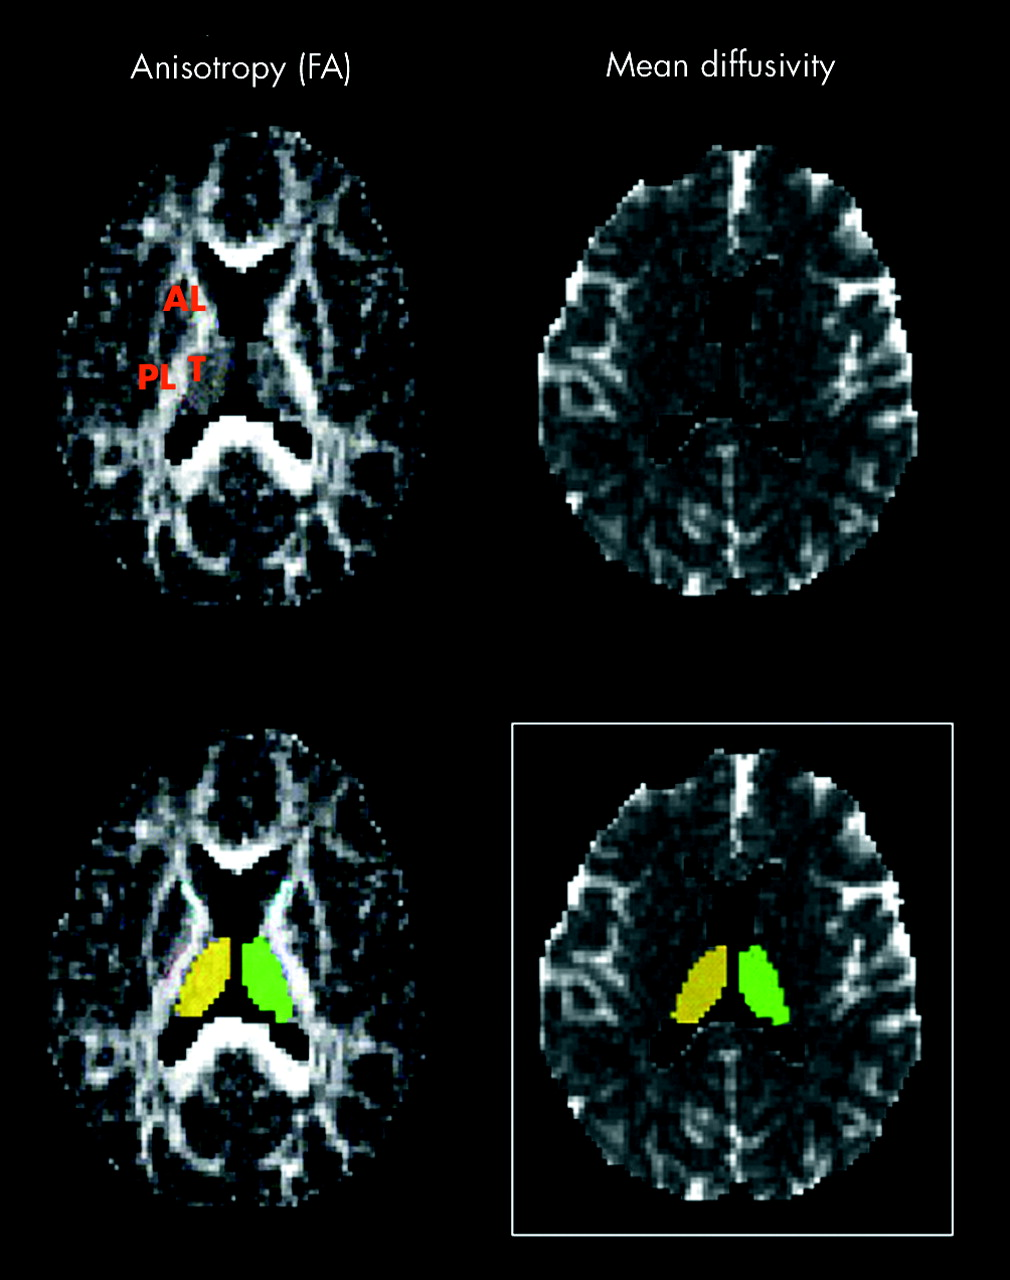 Longitudinal Thalamic Diffusion Changes After Middle Cerebral Artery